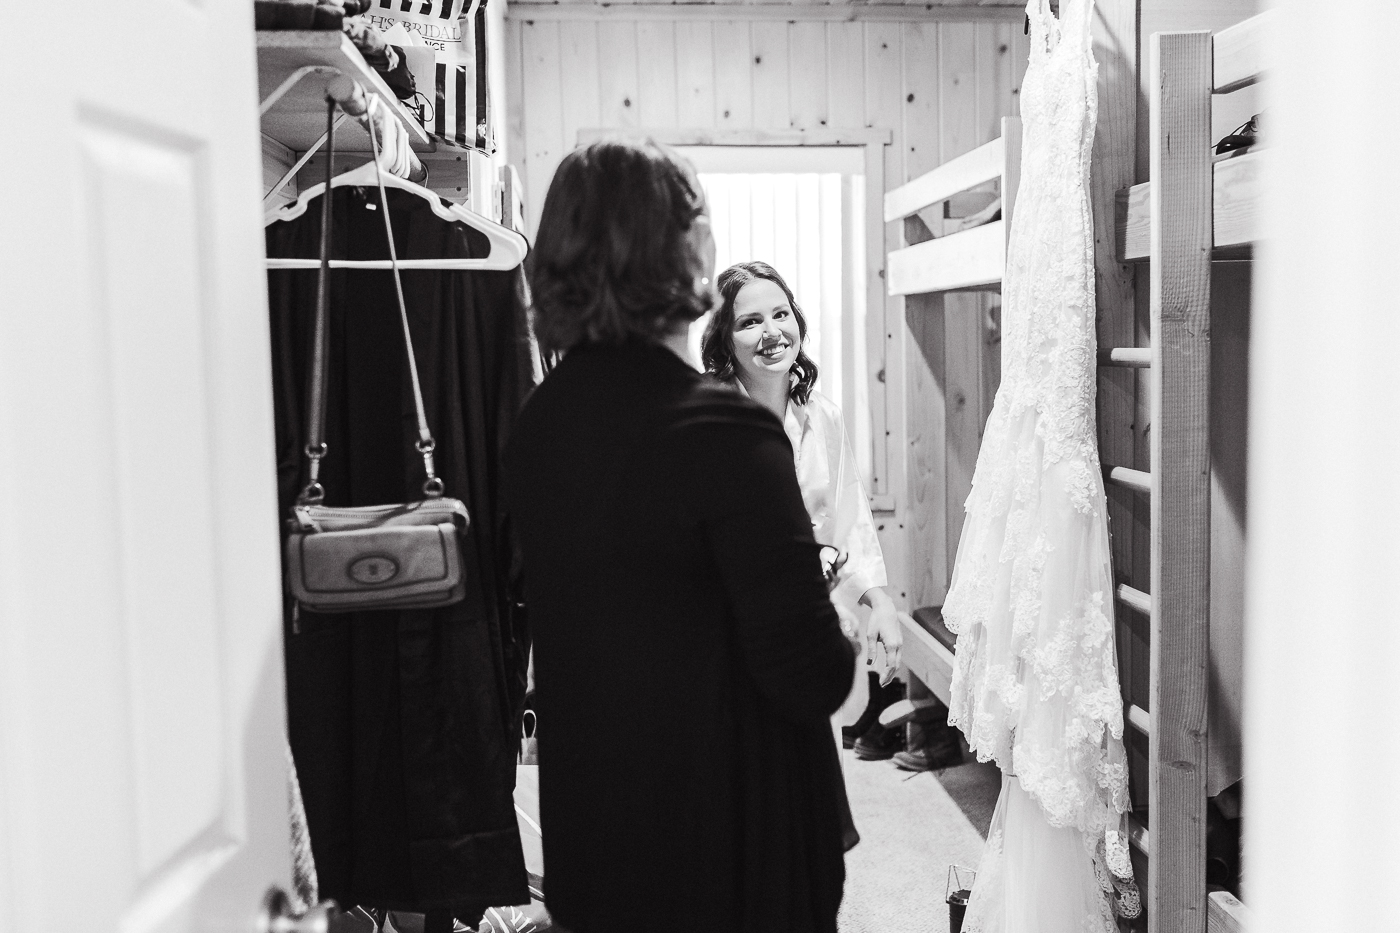 Wedding day getting ready photos by Megan Lee Photography